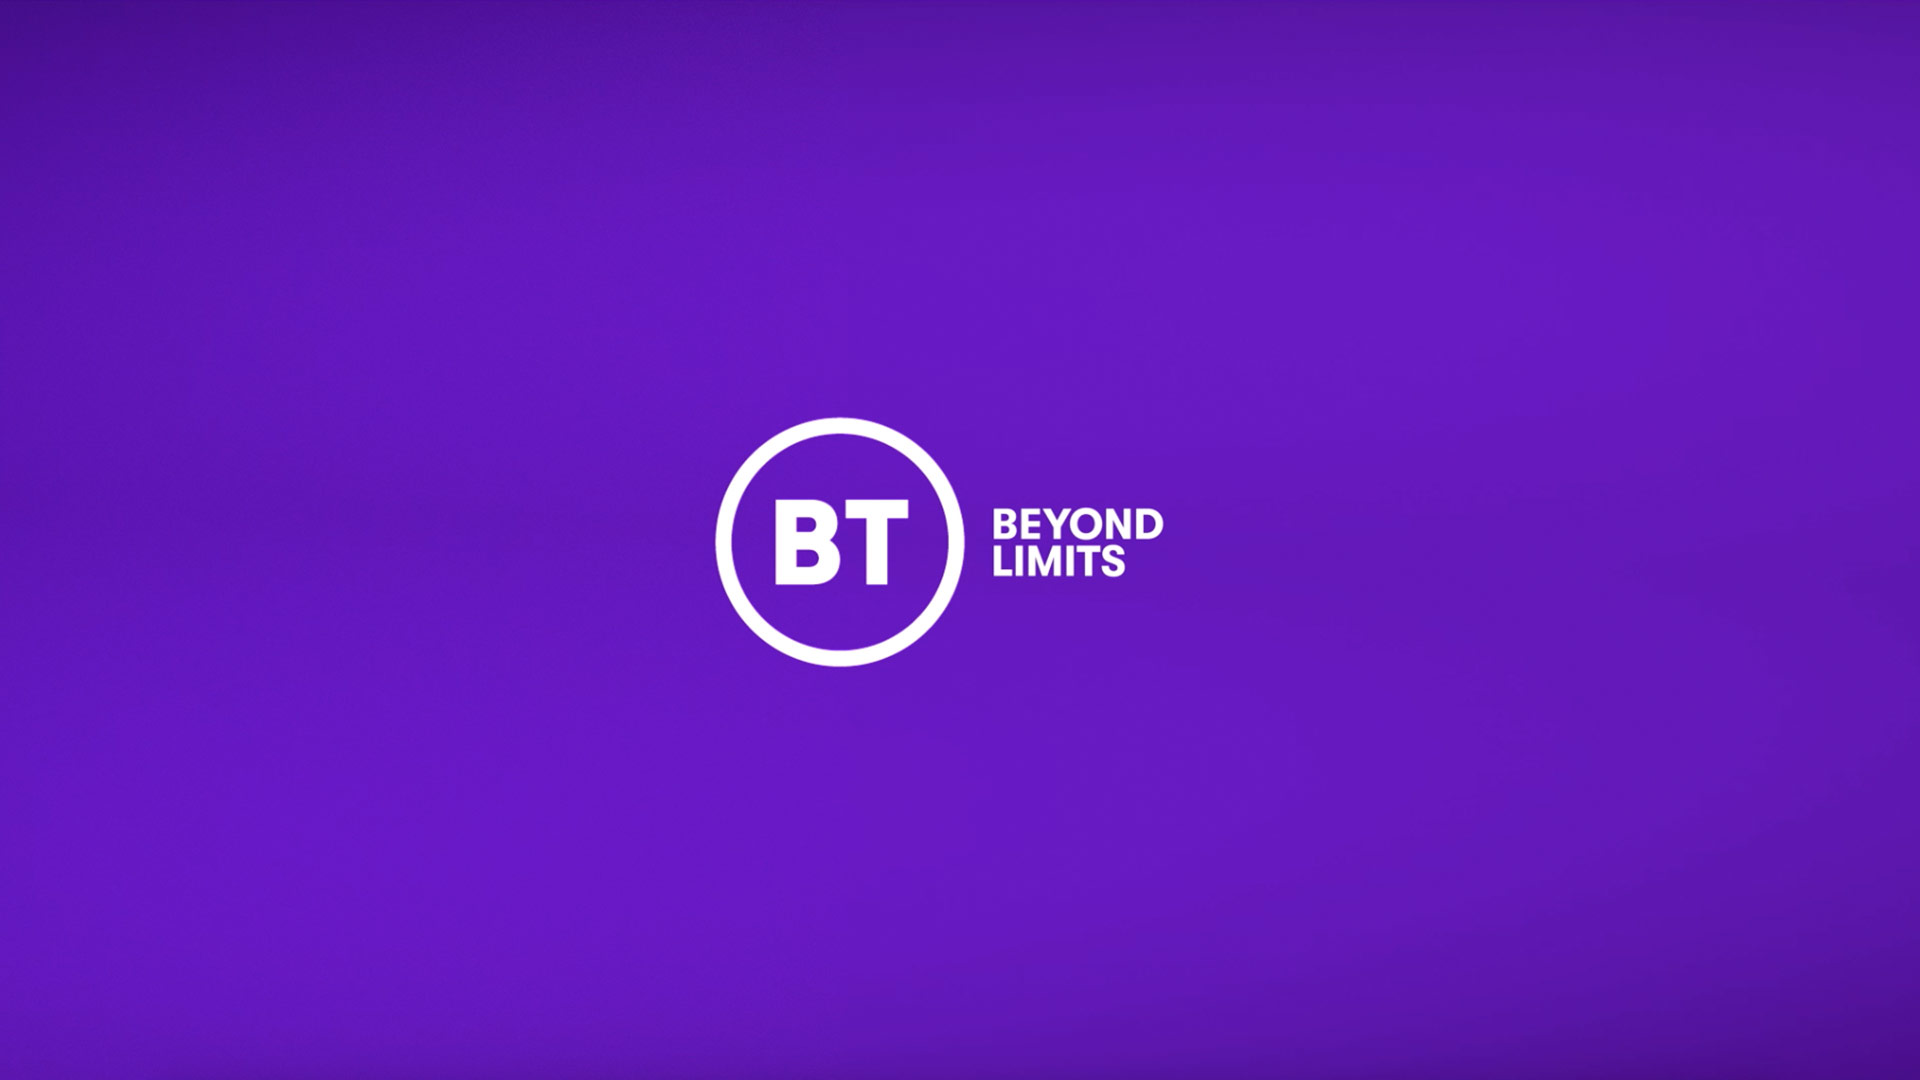 New BT logo following the BT rebrand and text reading beyond limits.